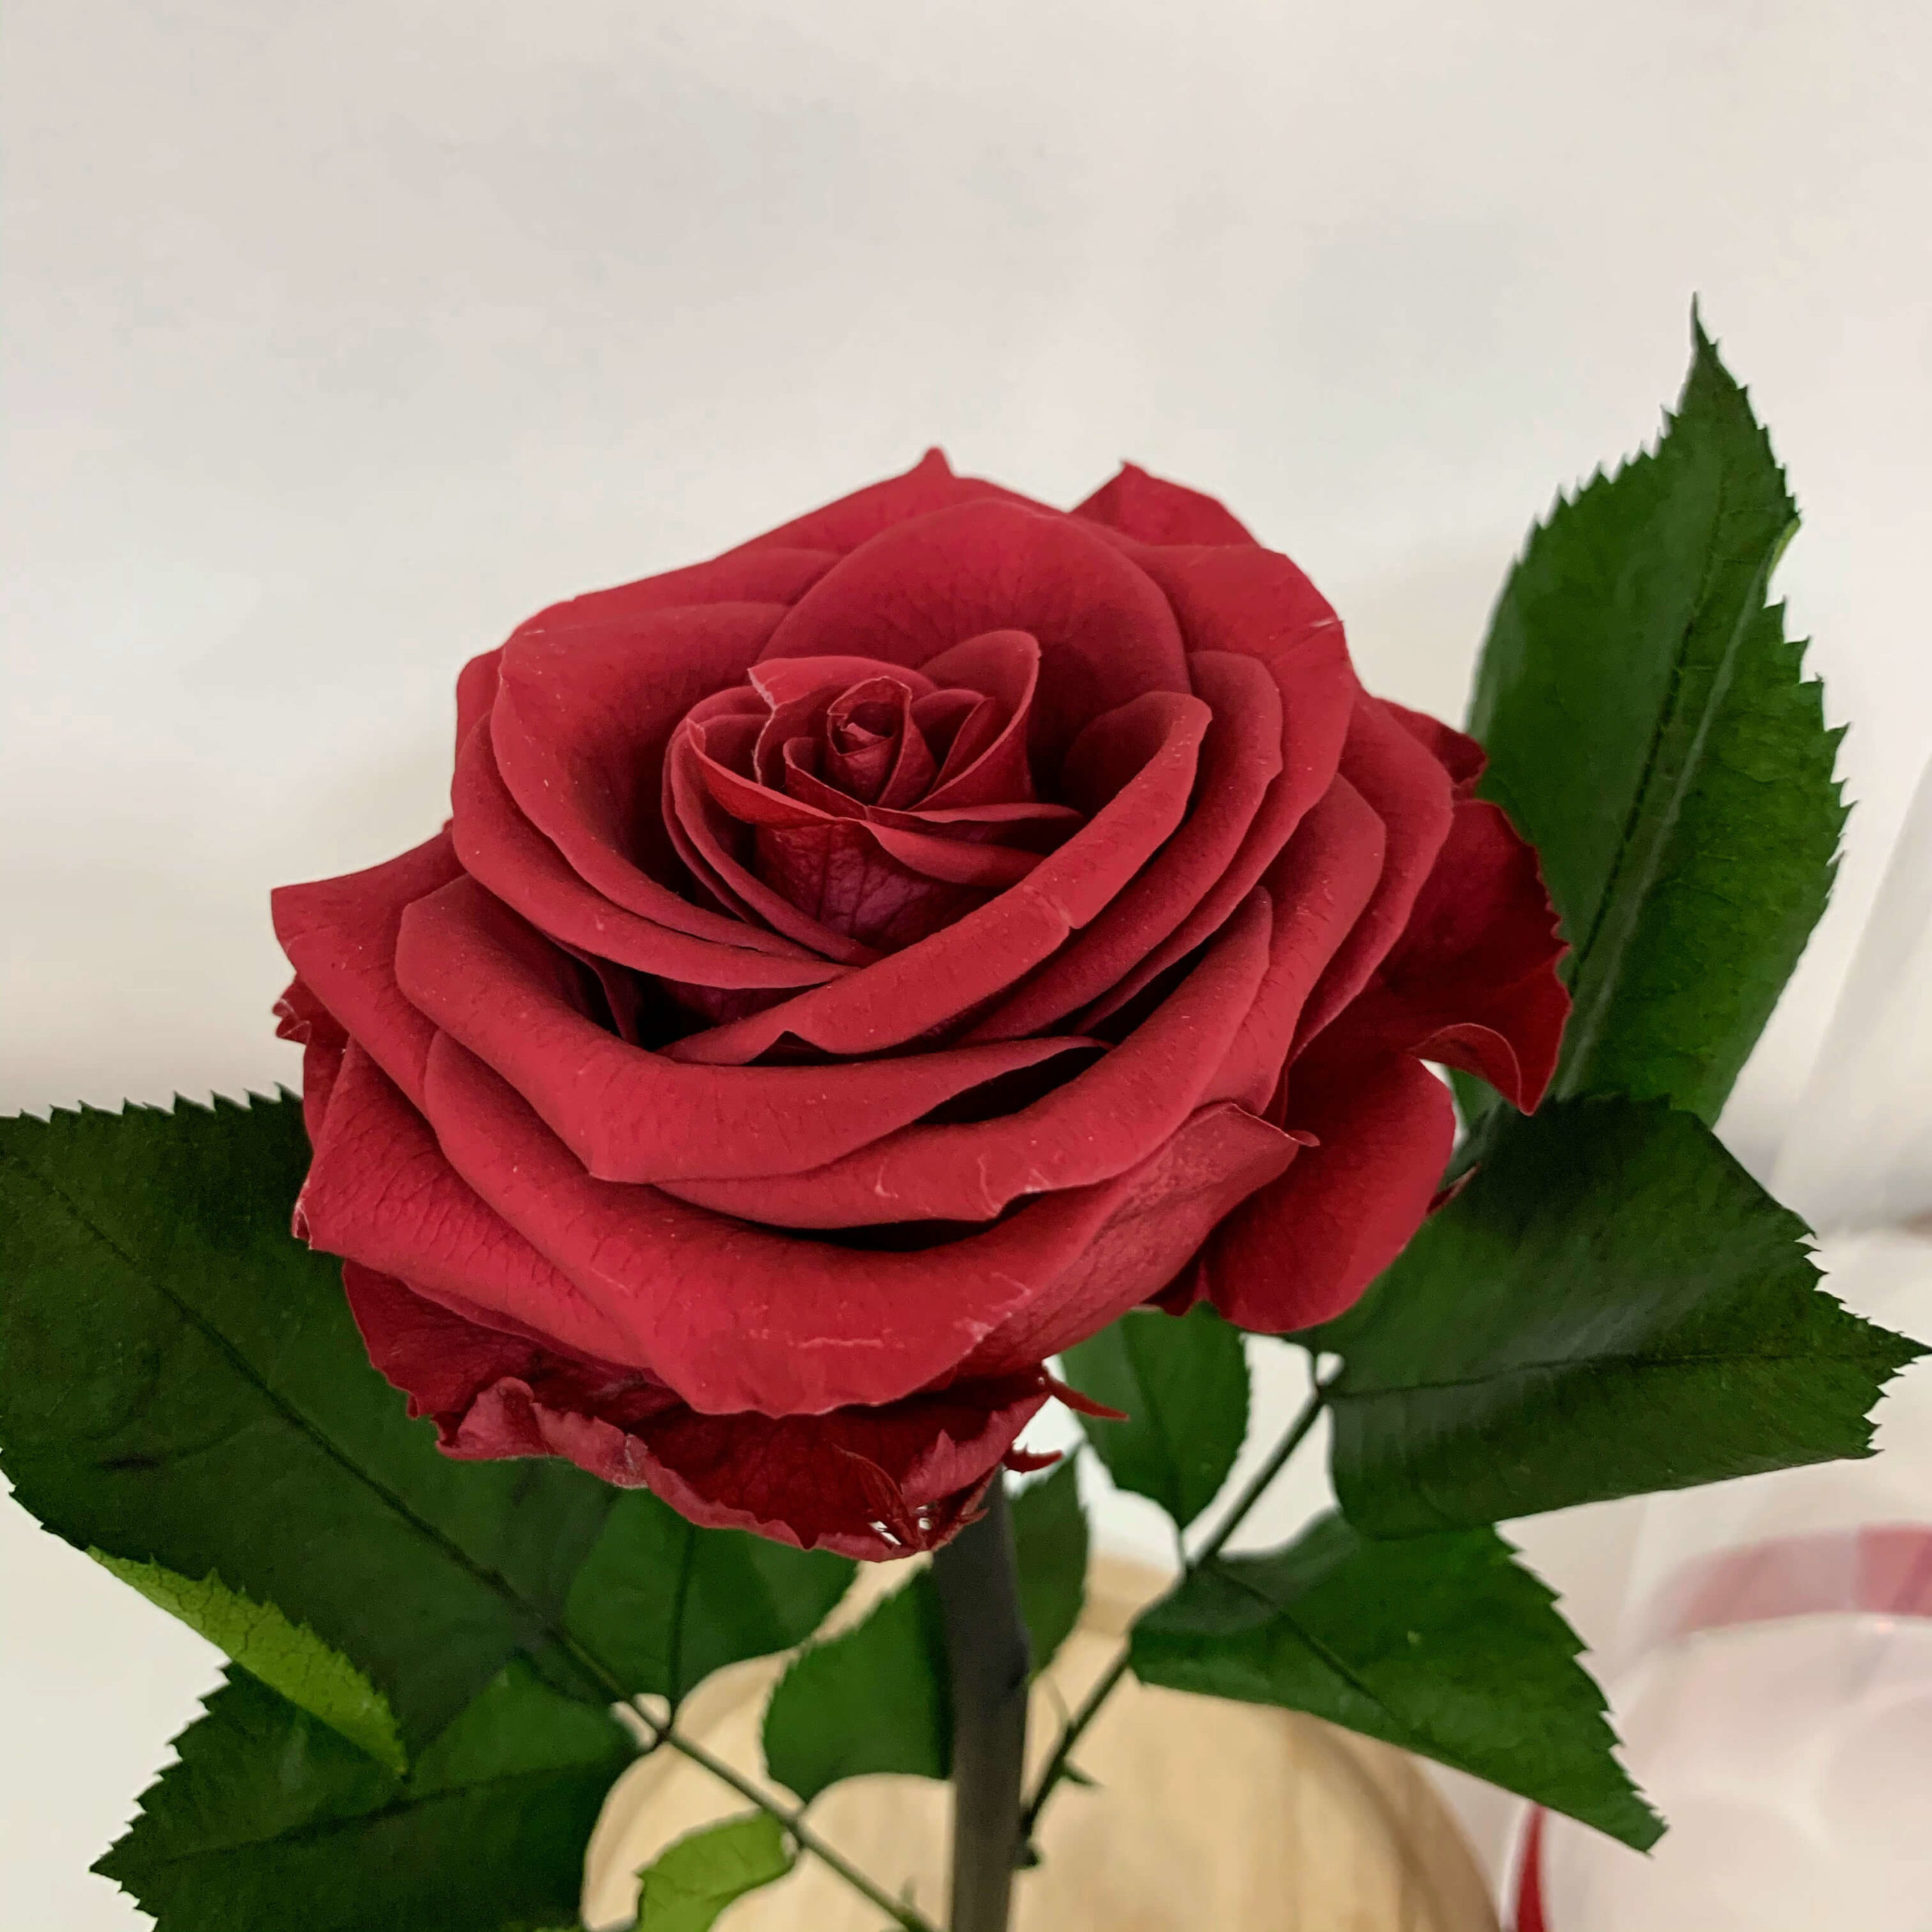 Online floral shop in Bacau with free home delivery